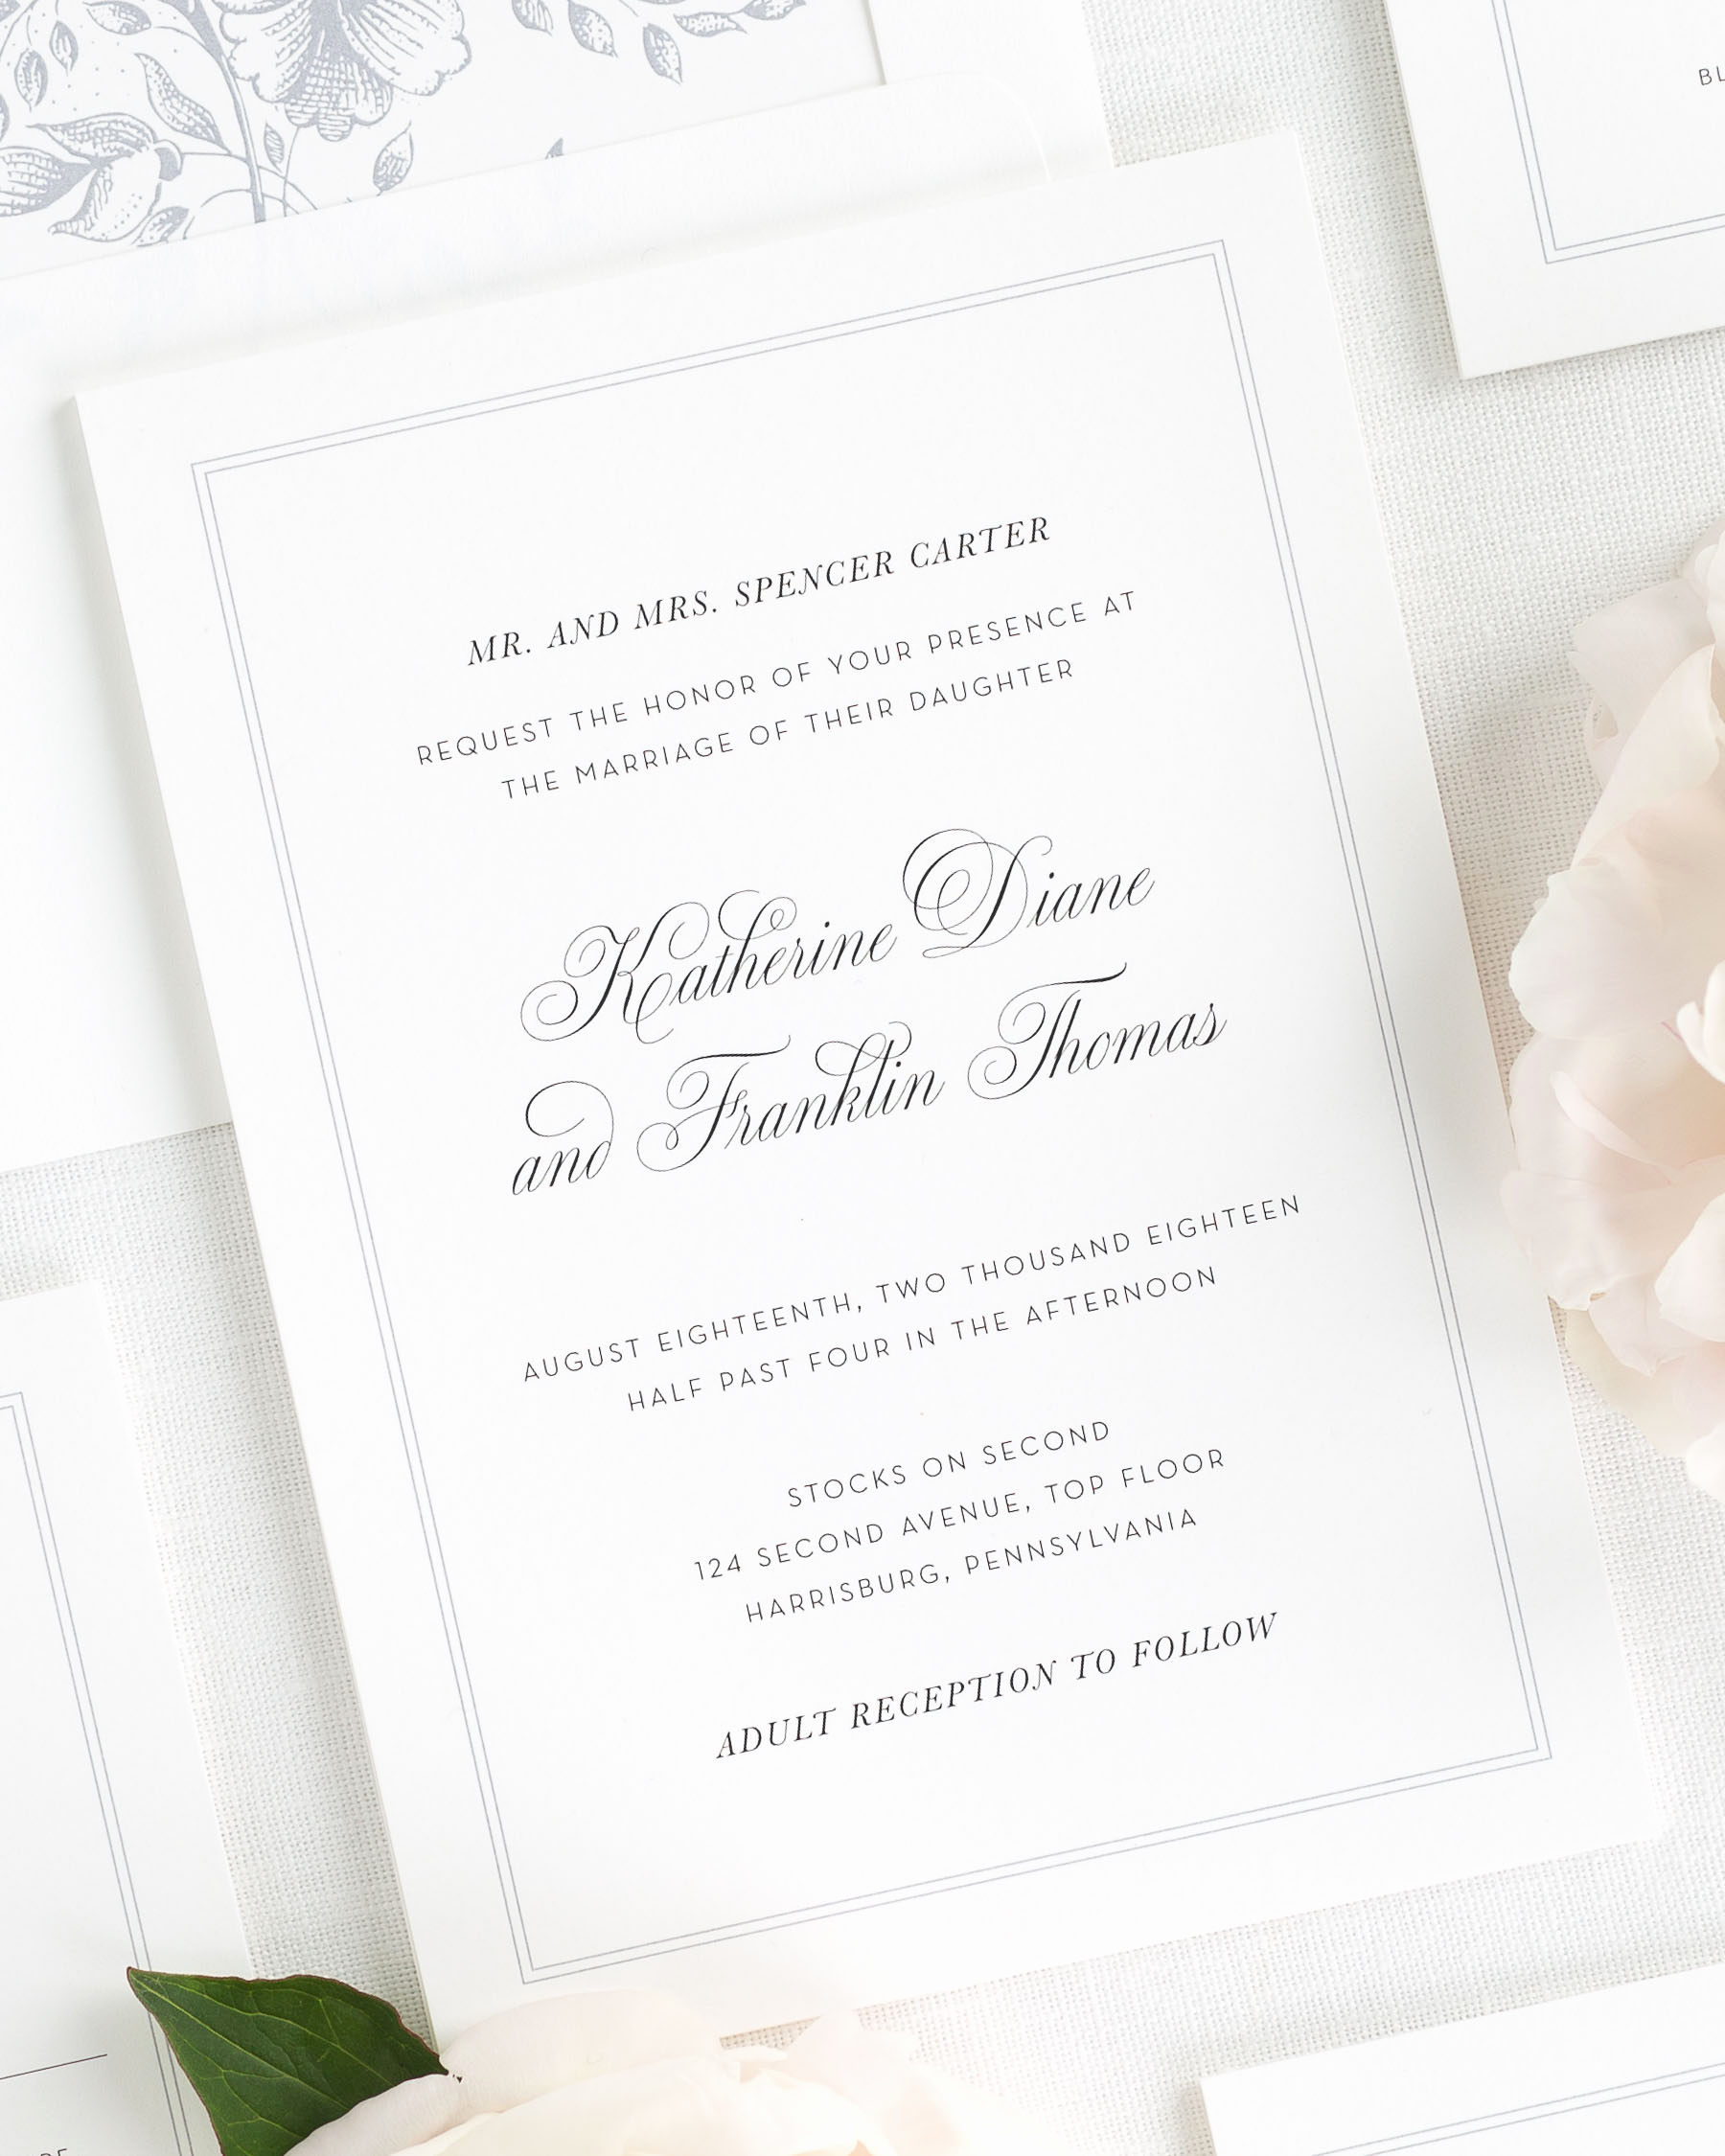 Wedding Invitations with Pictures Best Of Simply Classic Wedding Invitations Wedding Invitations